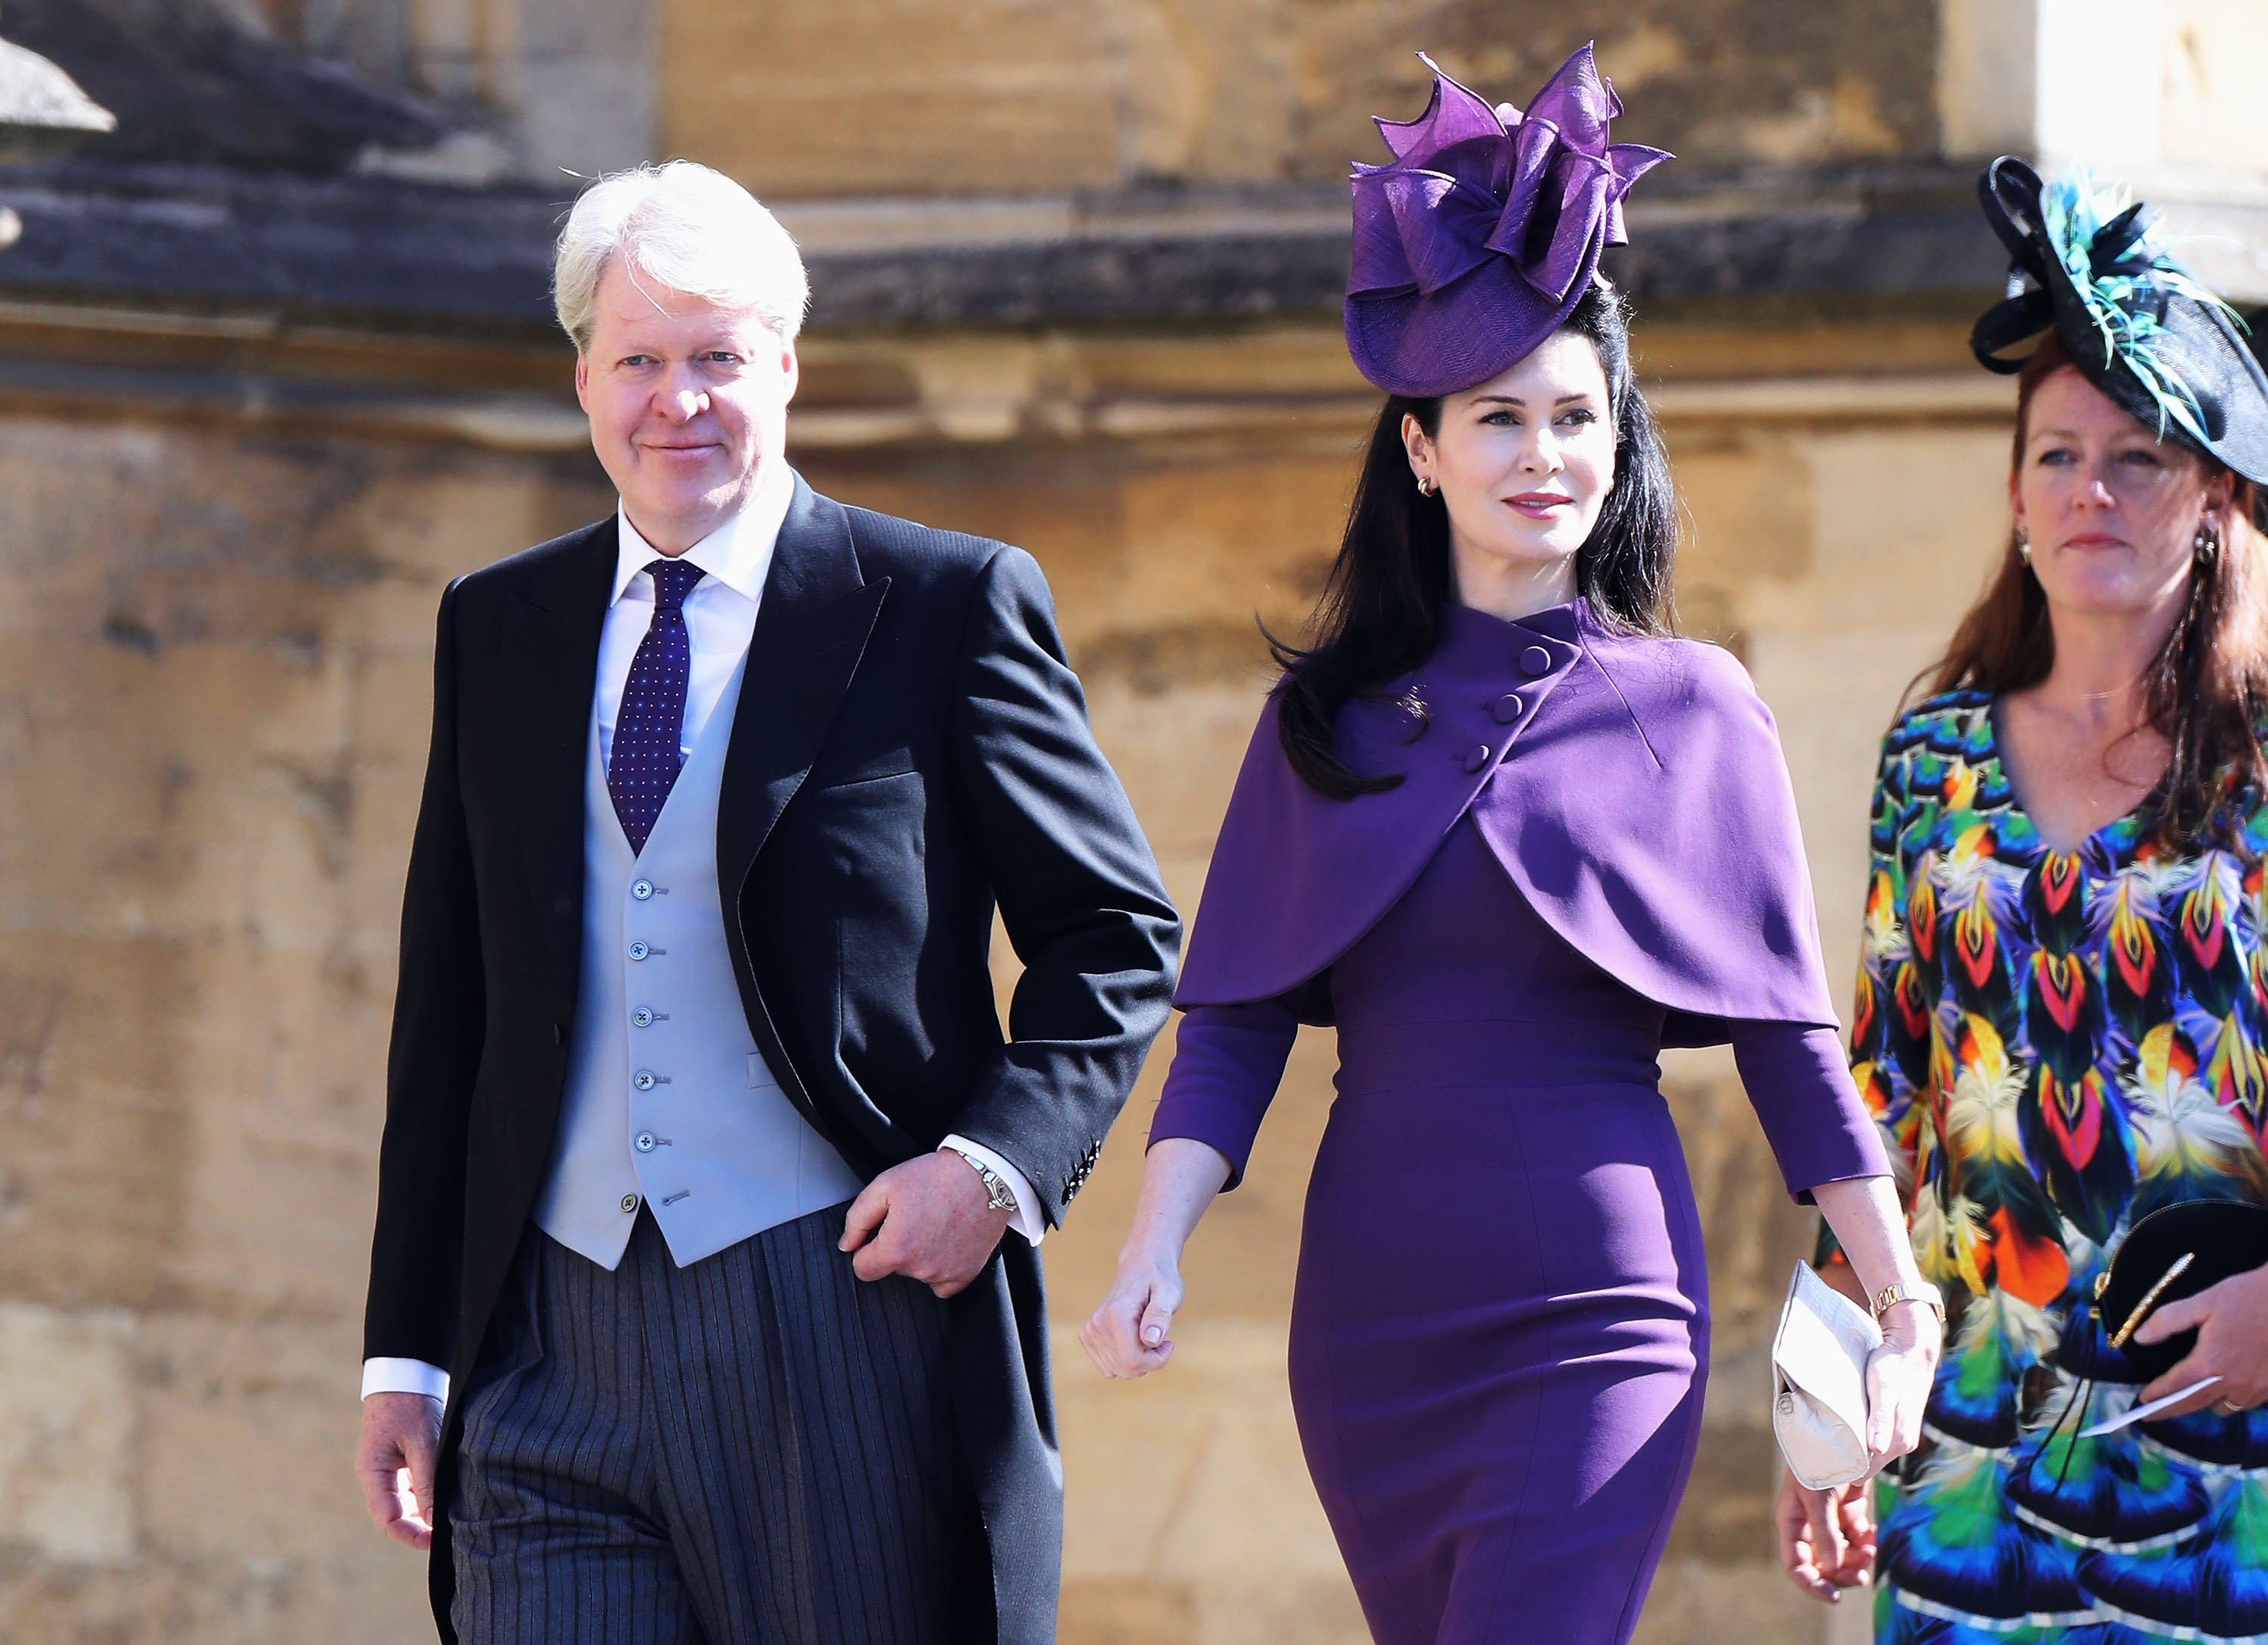 Charles and Karen Spencer attend the wedding of Meghan Markle and Prince Harry in Windsor, England on May 19, 2018 | Photo: Getty Images